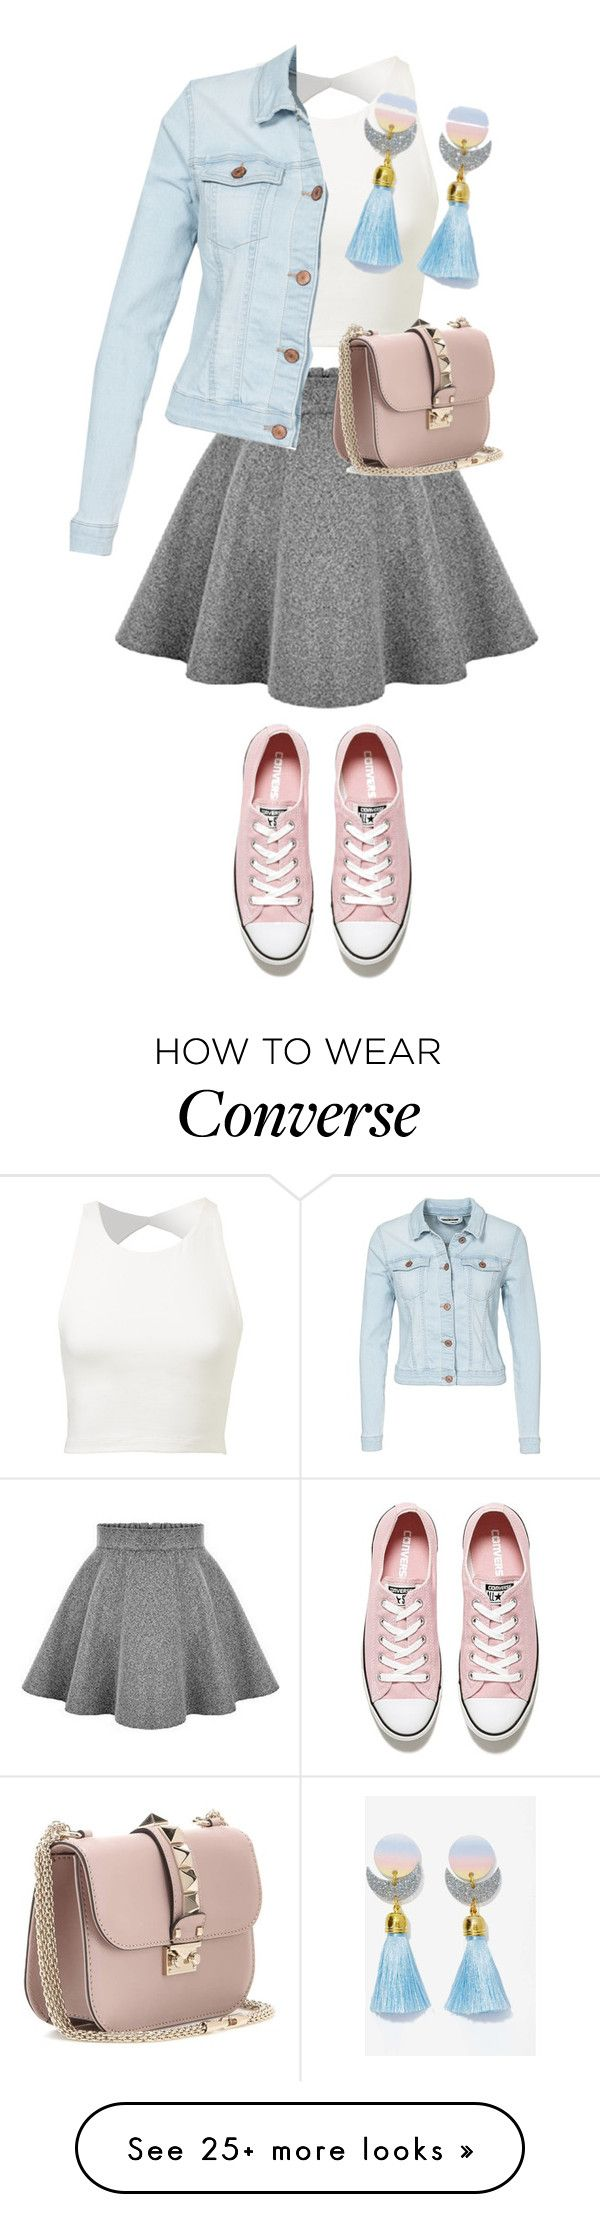 """Без названия #570"" by berlinmoskva on Polyvore featuring Converse, Valentino, Noisy May, women's clothing, women's fashion, women, female, woman, misses and juniors"